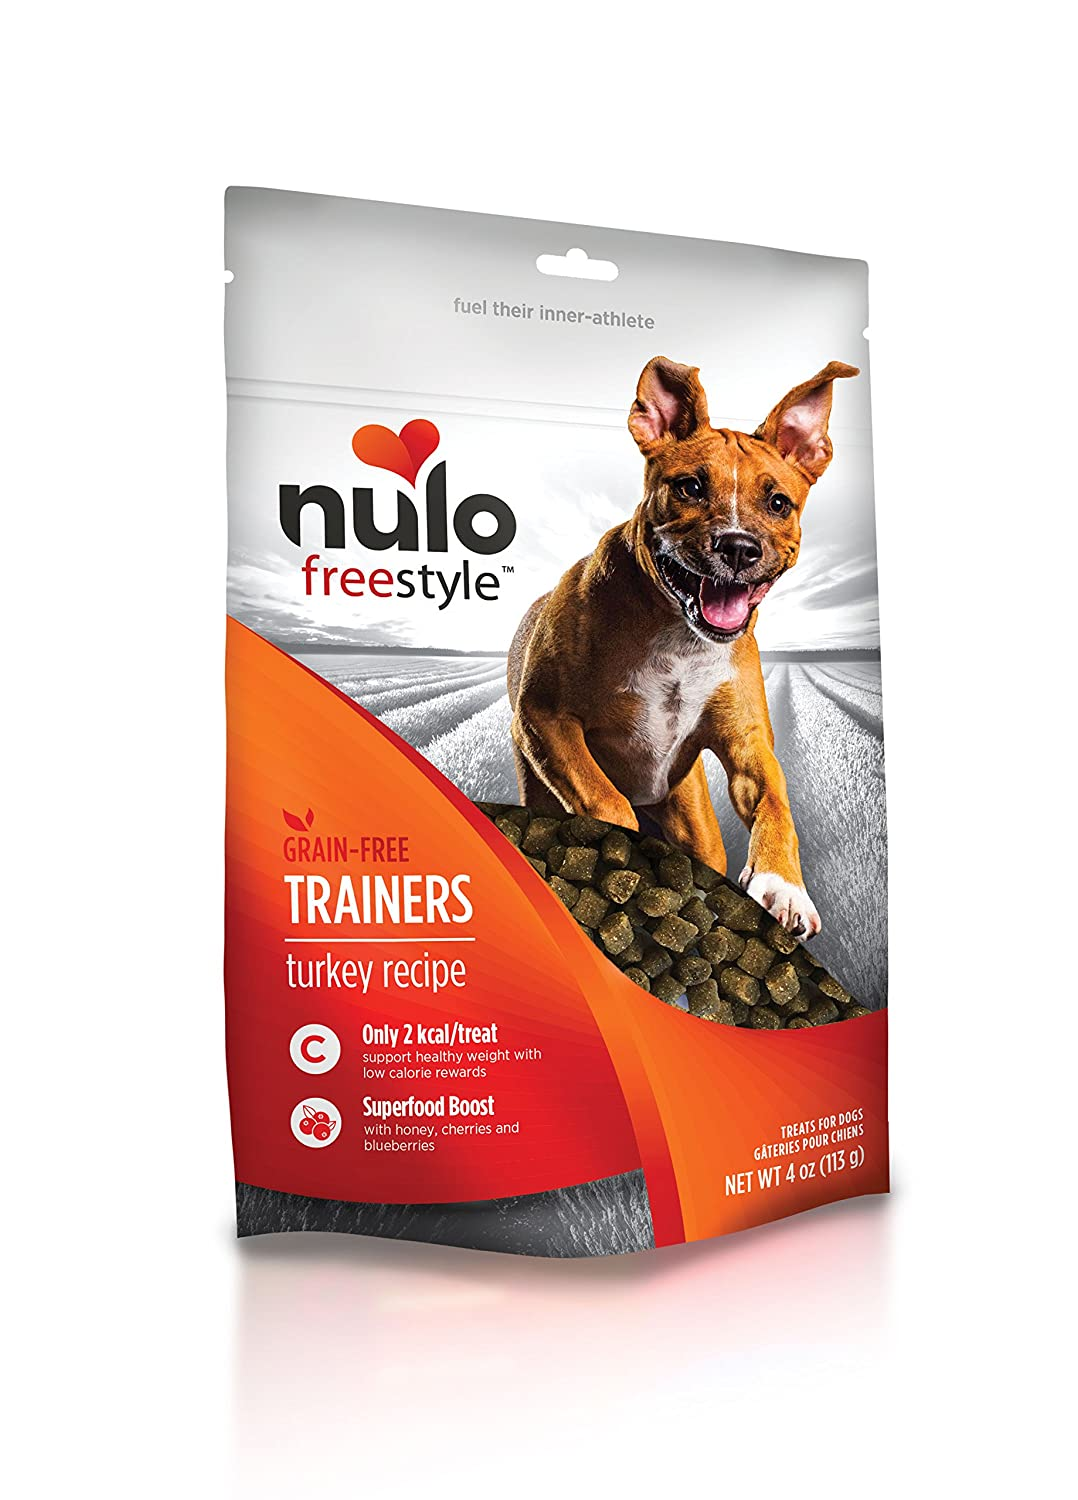 Nulo Puppy & Adult Freestyle Trainers Dog Treats: Healthy Gluten Free Low Calorie Grain Free Dog Training Rewards - 4 oz Bag Nulo Pet Food Inc. 56TS04